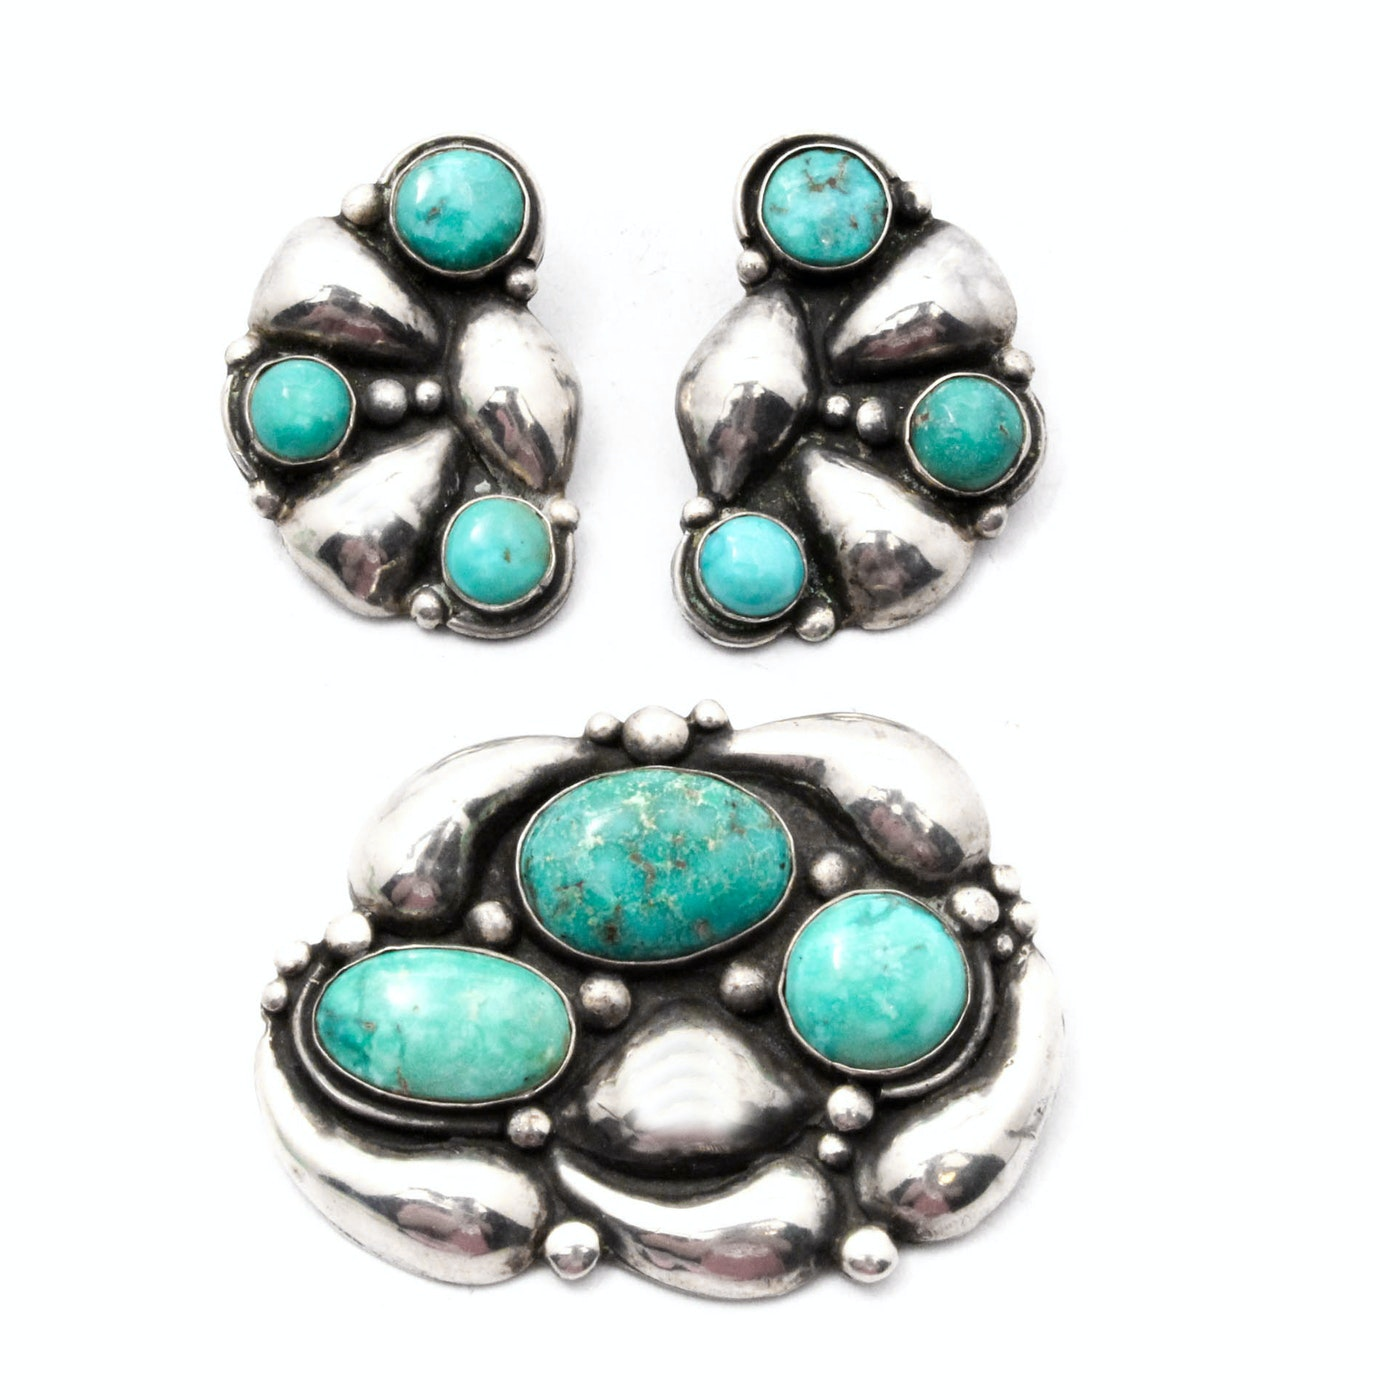 Allen Pooyouma Hopi Sterling Silver Dyed Turquoise Earring and Brooch Set